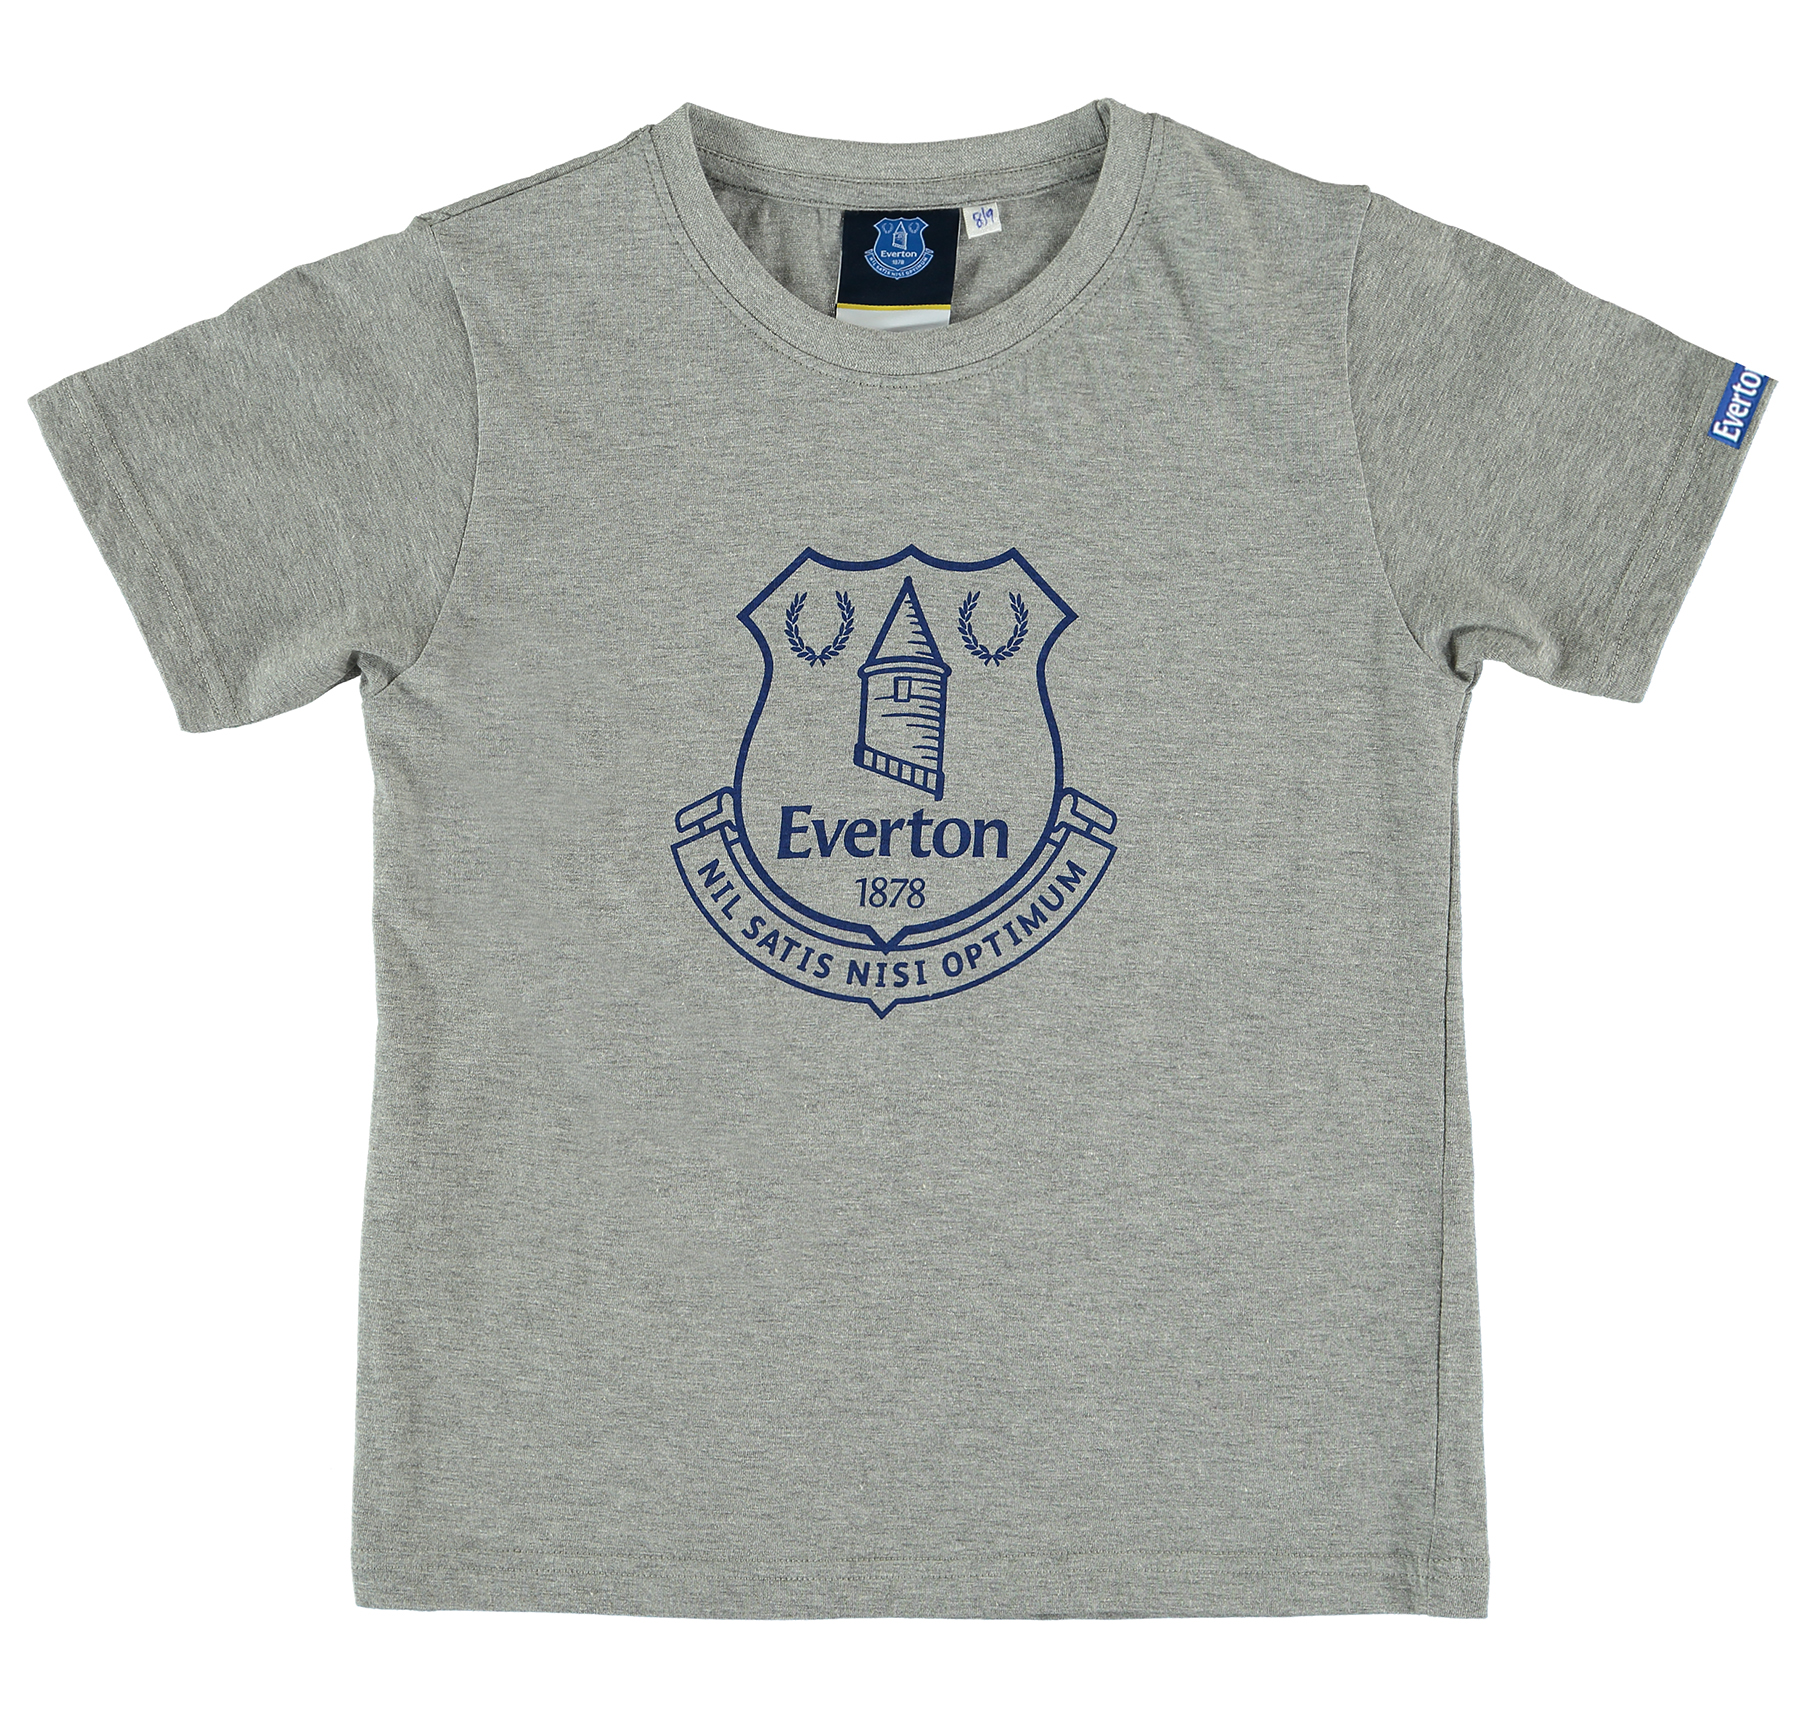 Everton Printed Crest T-Shirt - Grey Marl - Junior